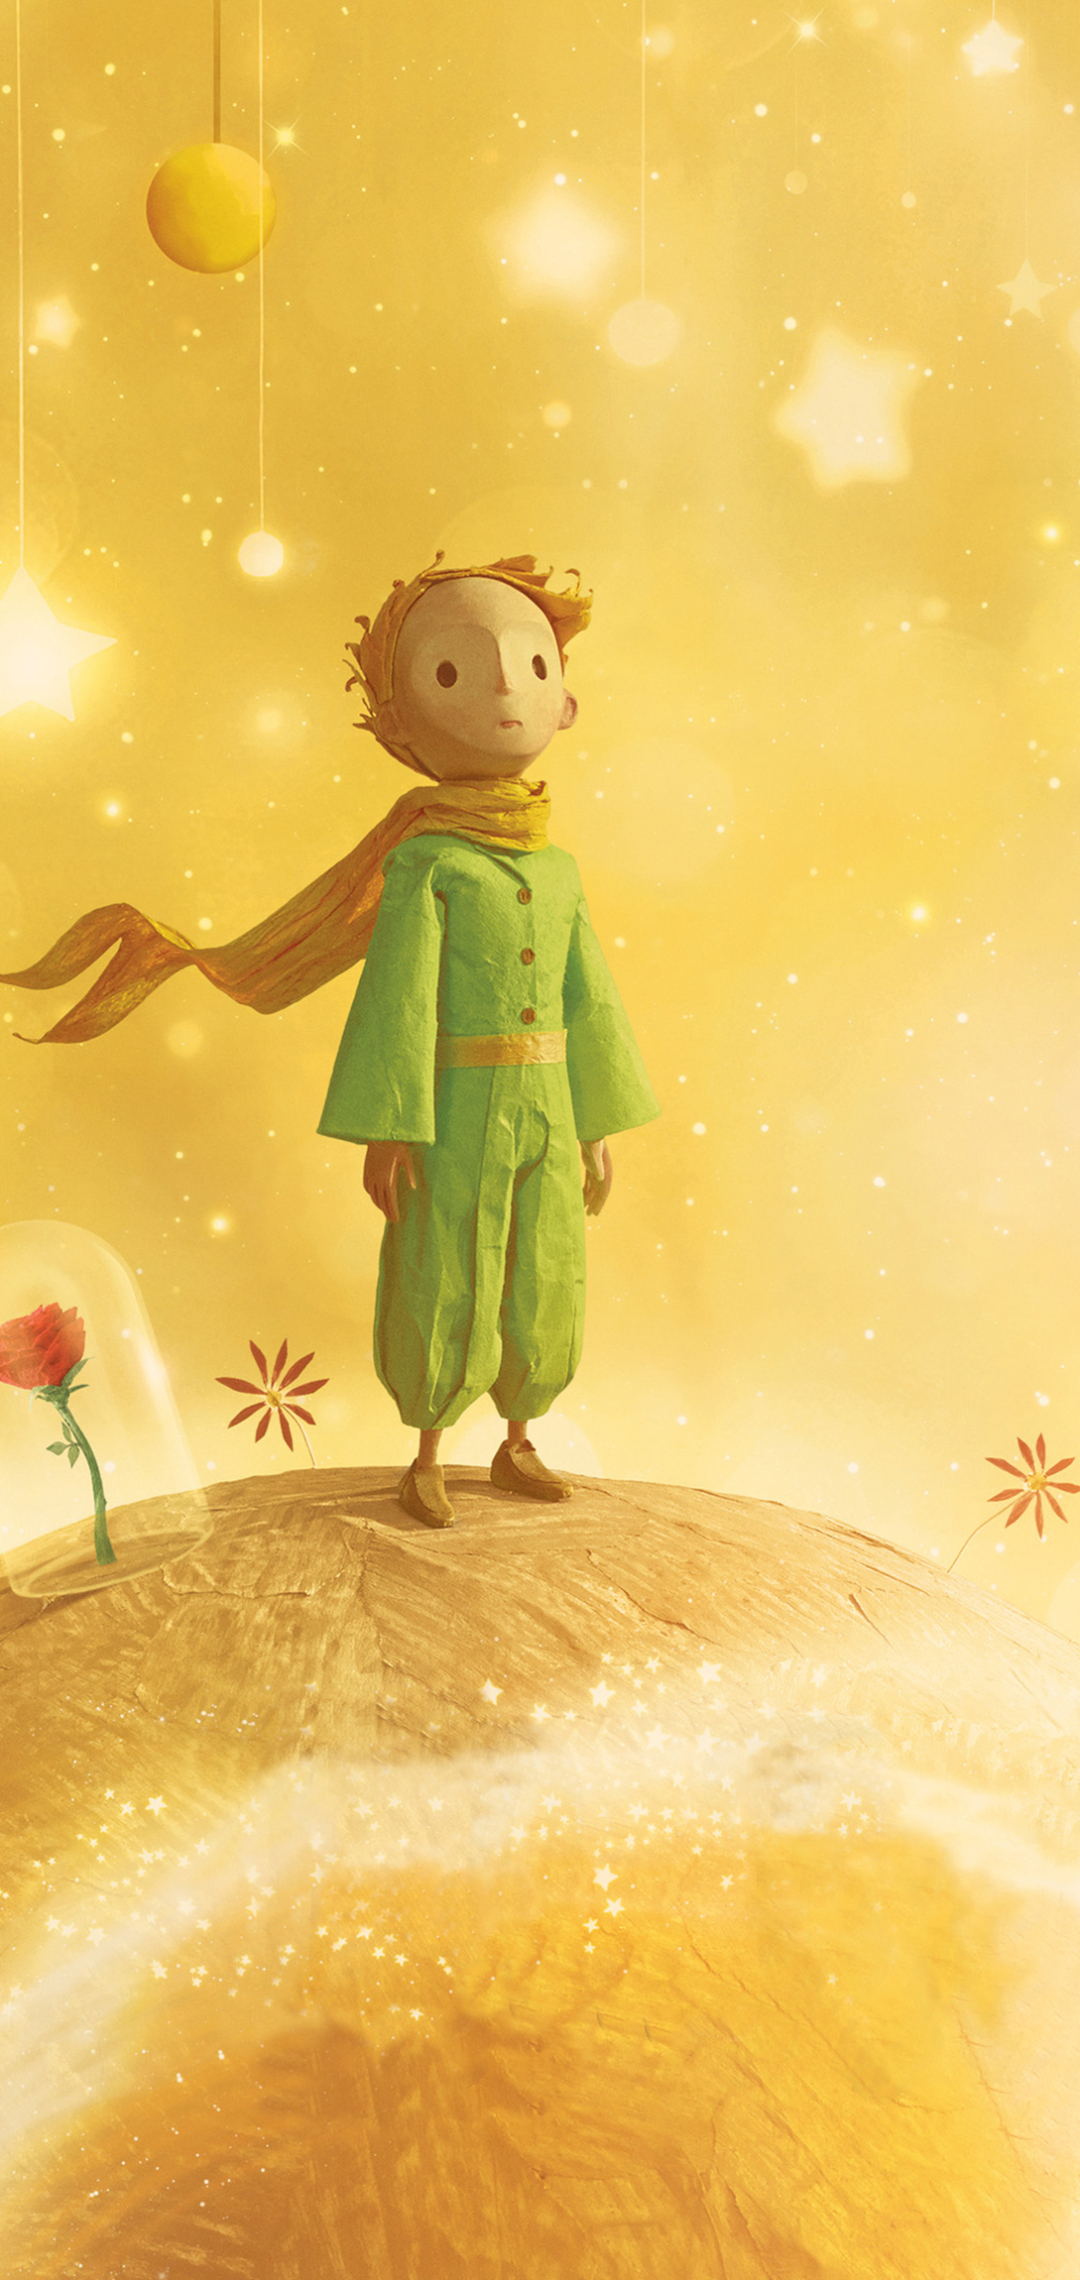 Movie The Little Prince 1080x2280 Wallpaper Id 729560 Mobile Abyss